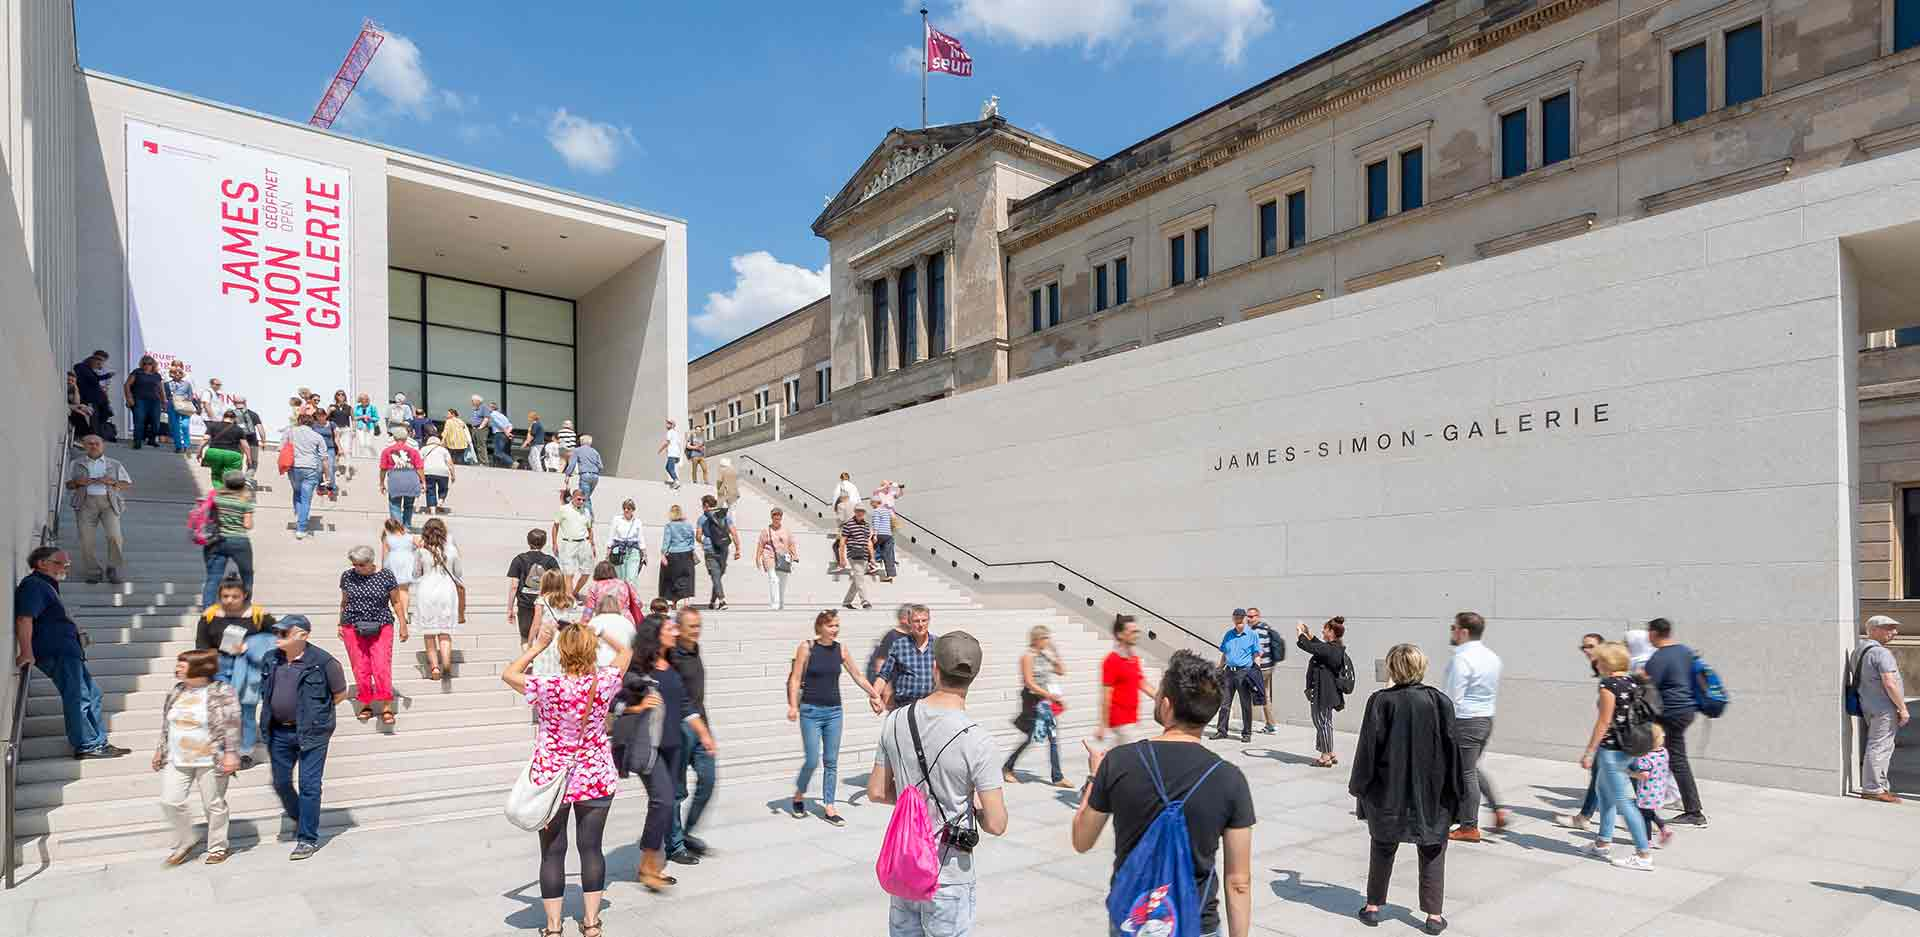 Activity Day for the Opening of the James-Simon Galerie on 13 July 2019